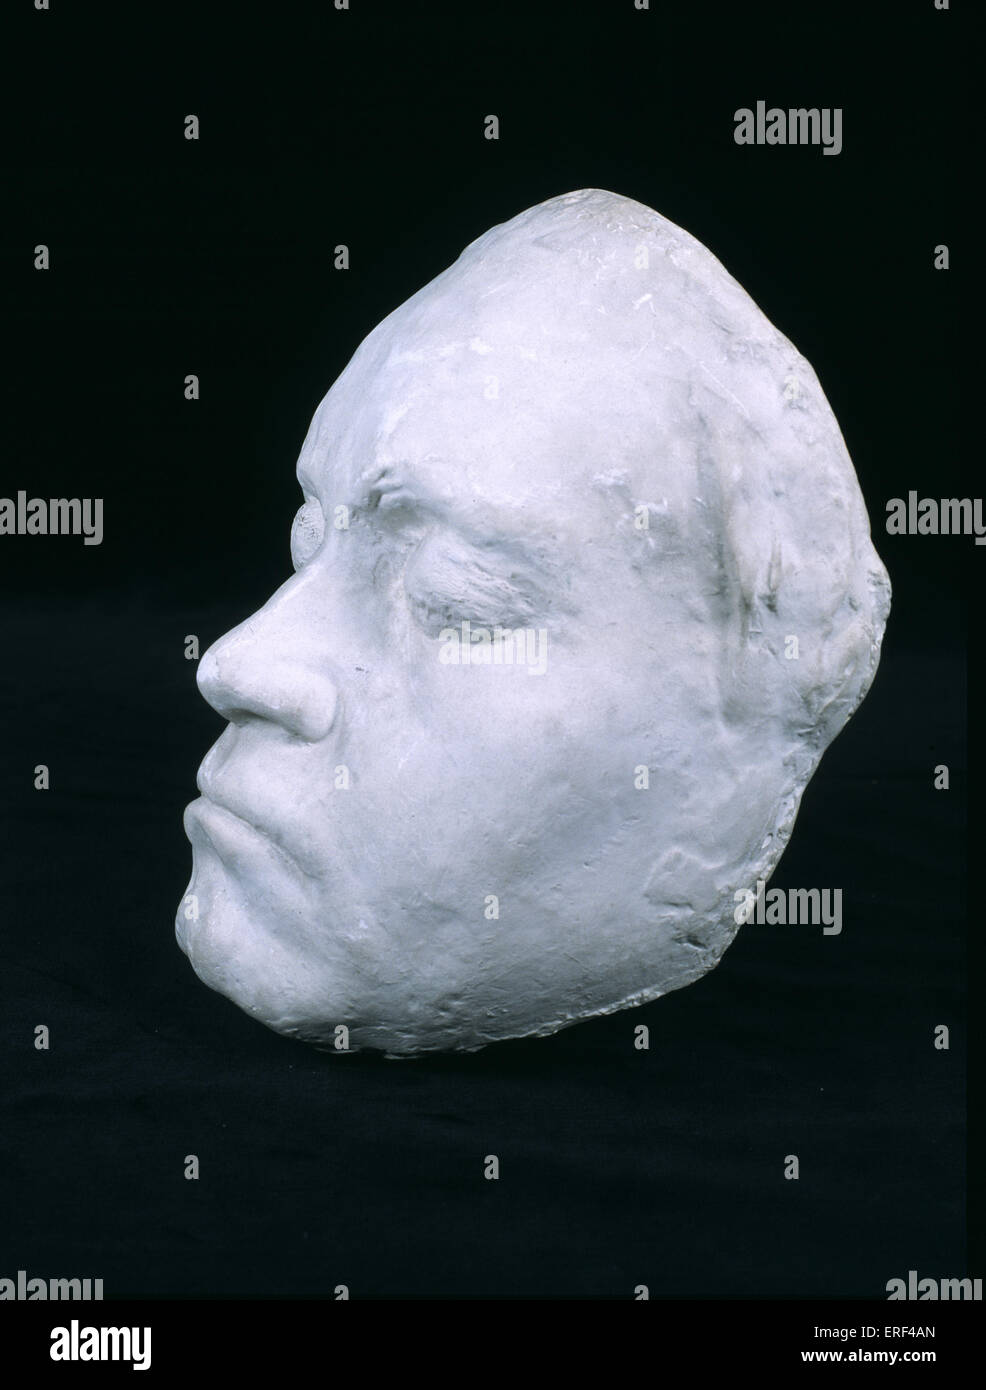 Ludwig van Beethoven 's life mask made in 1812 while Beethoven was working on 7th Symphony.  Mould made by Franz - Stock Image